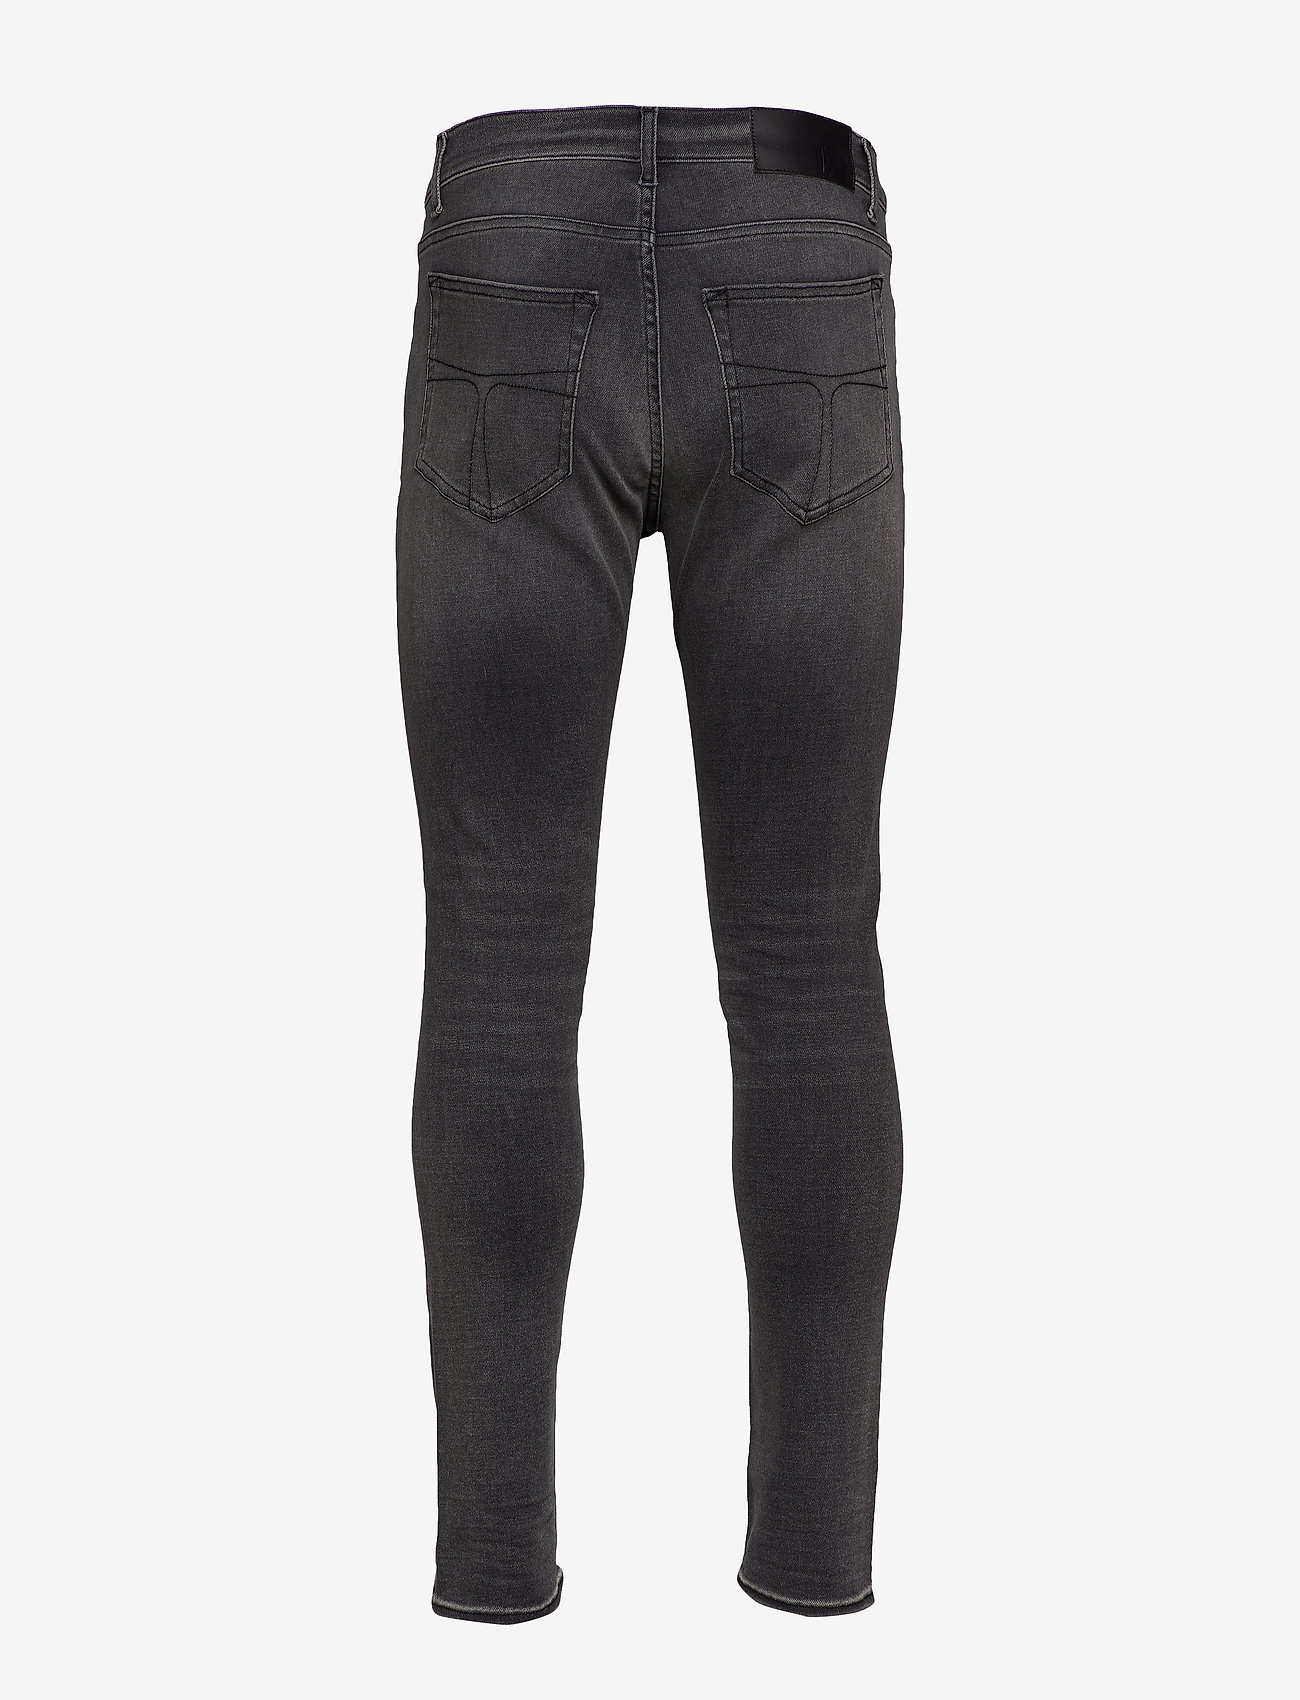 Evolve (Black) - Tiger of Sweden Jeans oWMHyS